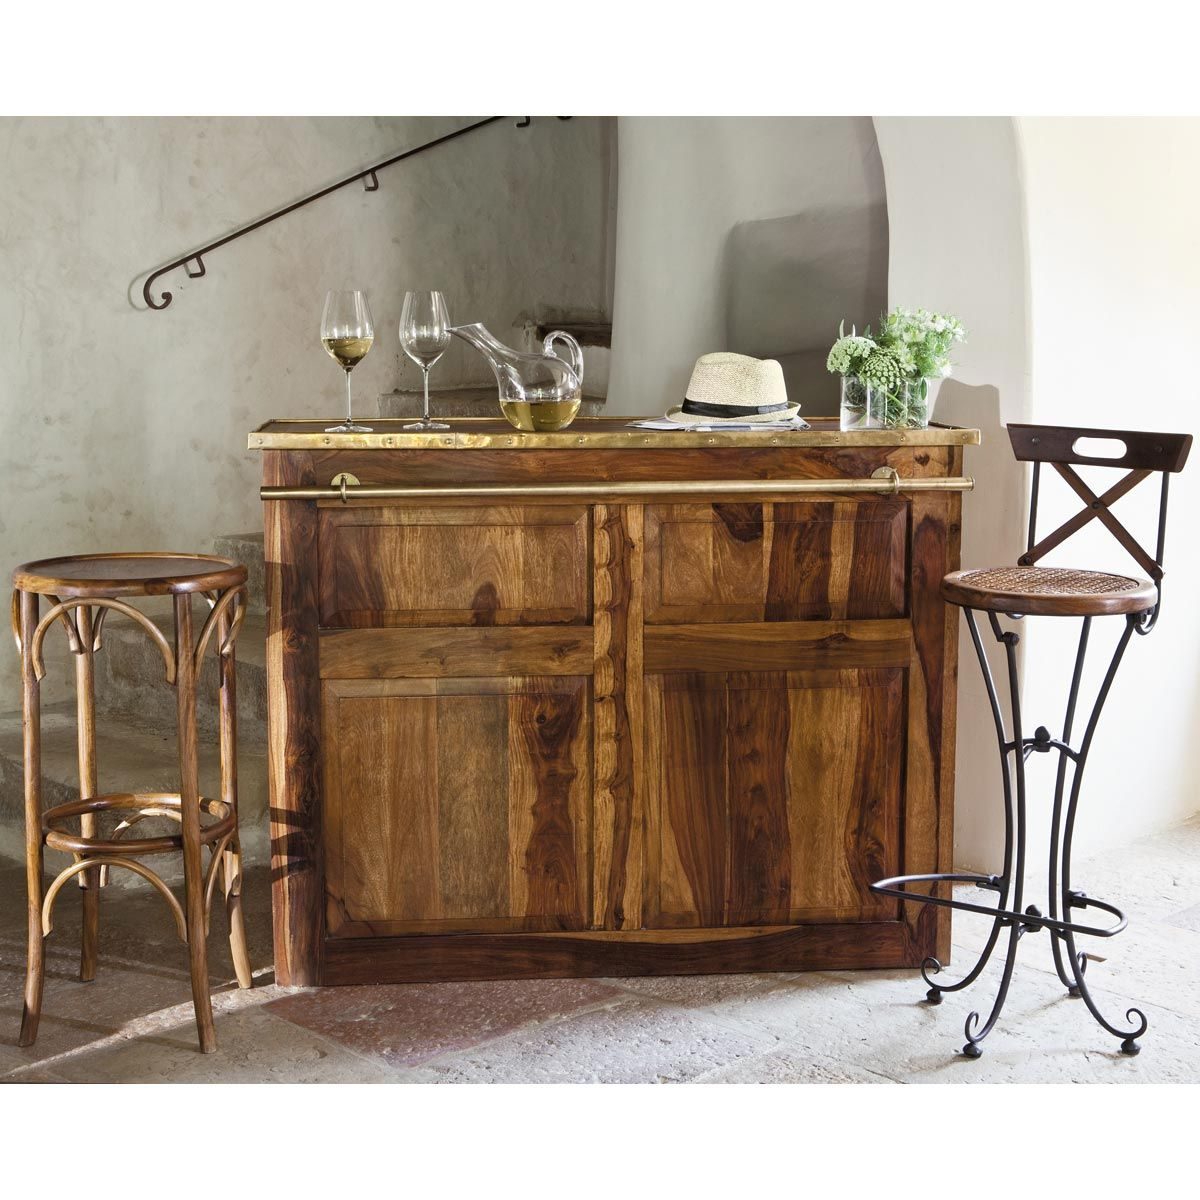 meuble de bar en bois de sheesham massif l 132 cm meuble de bar bar et meubles. Black Bedroom Furniture Sets. Home Design Ideas